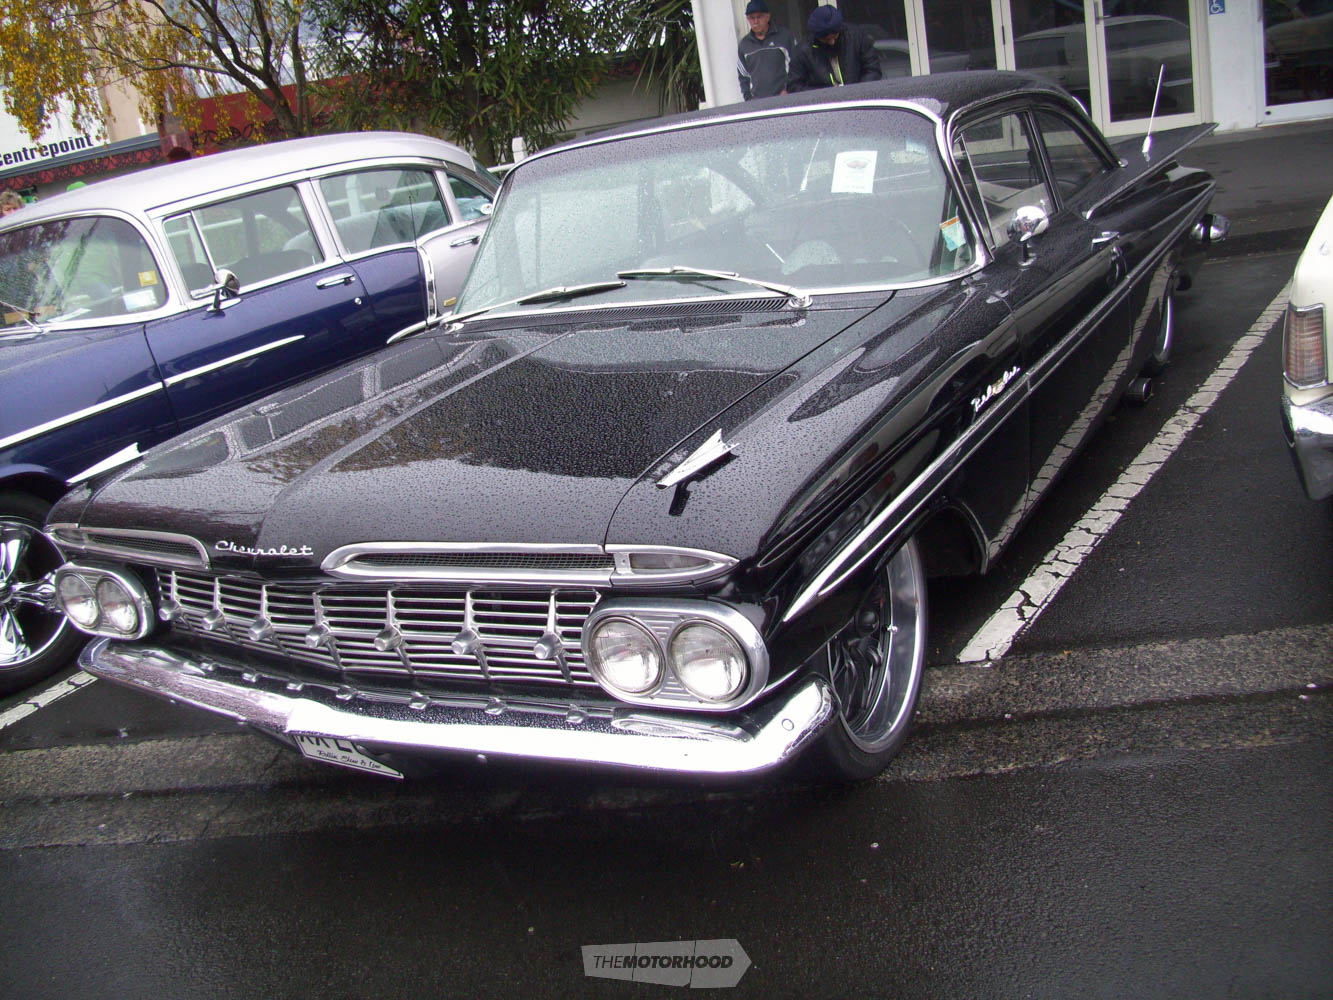 Anther Bay Rodders member Johnny Birch  came in his beautiful  black 1959 Chevrolet BelAir.jpg